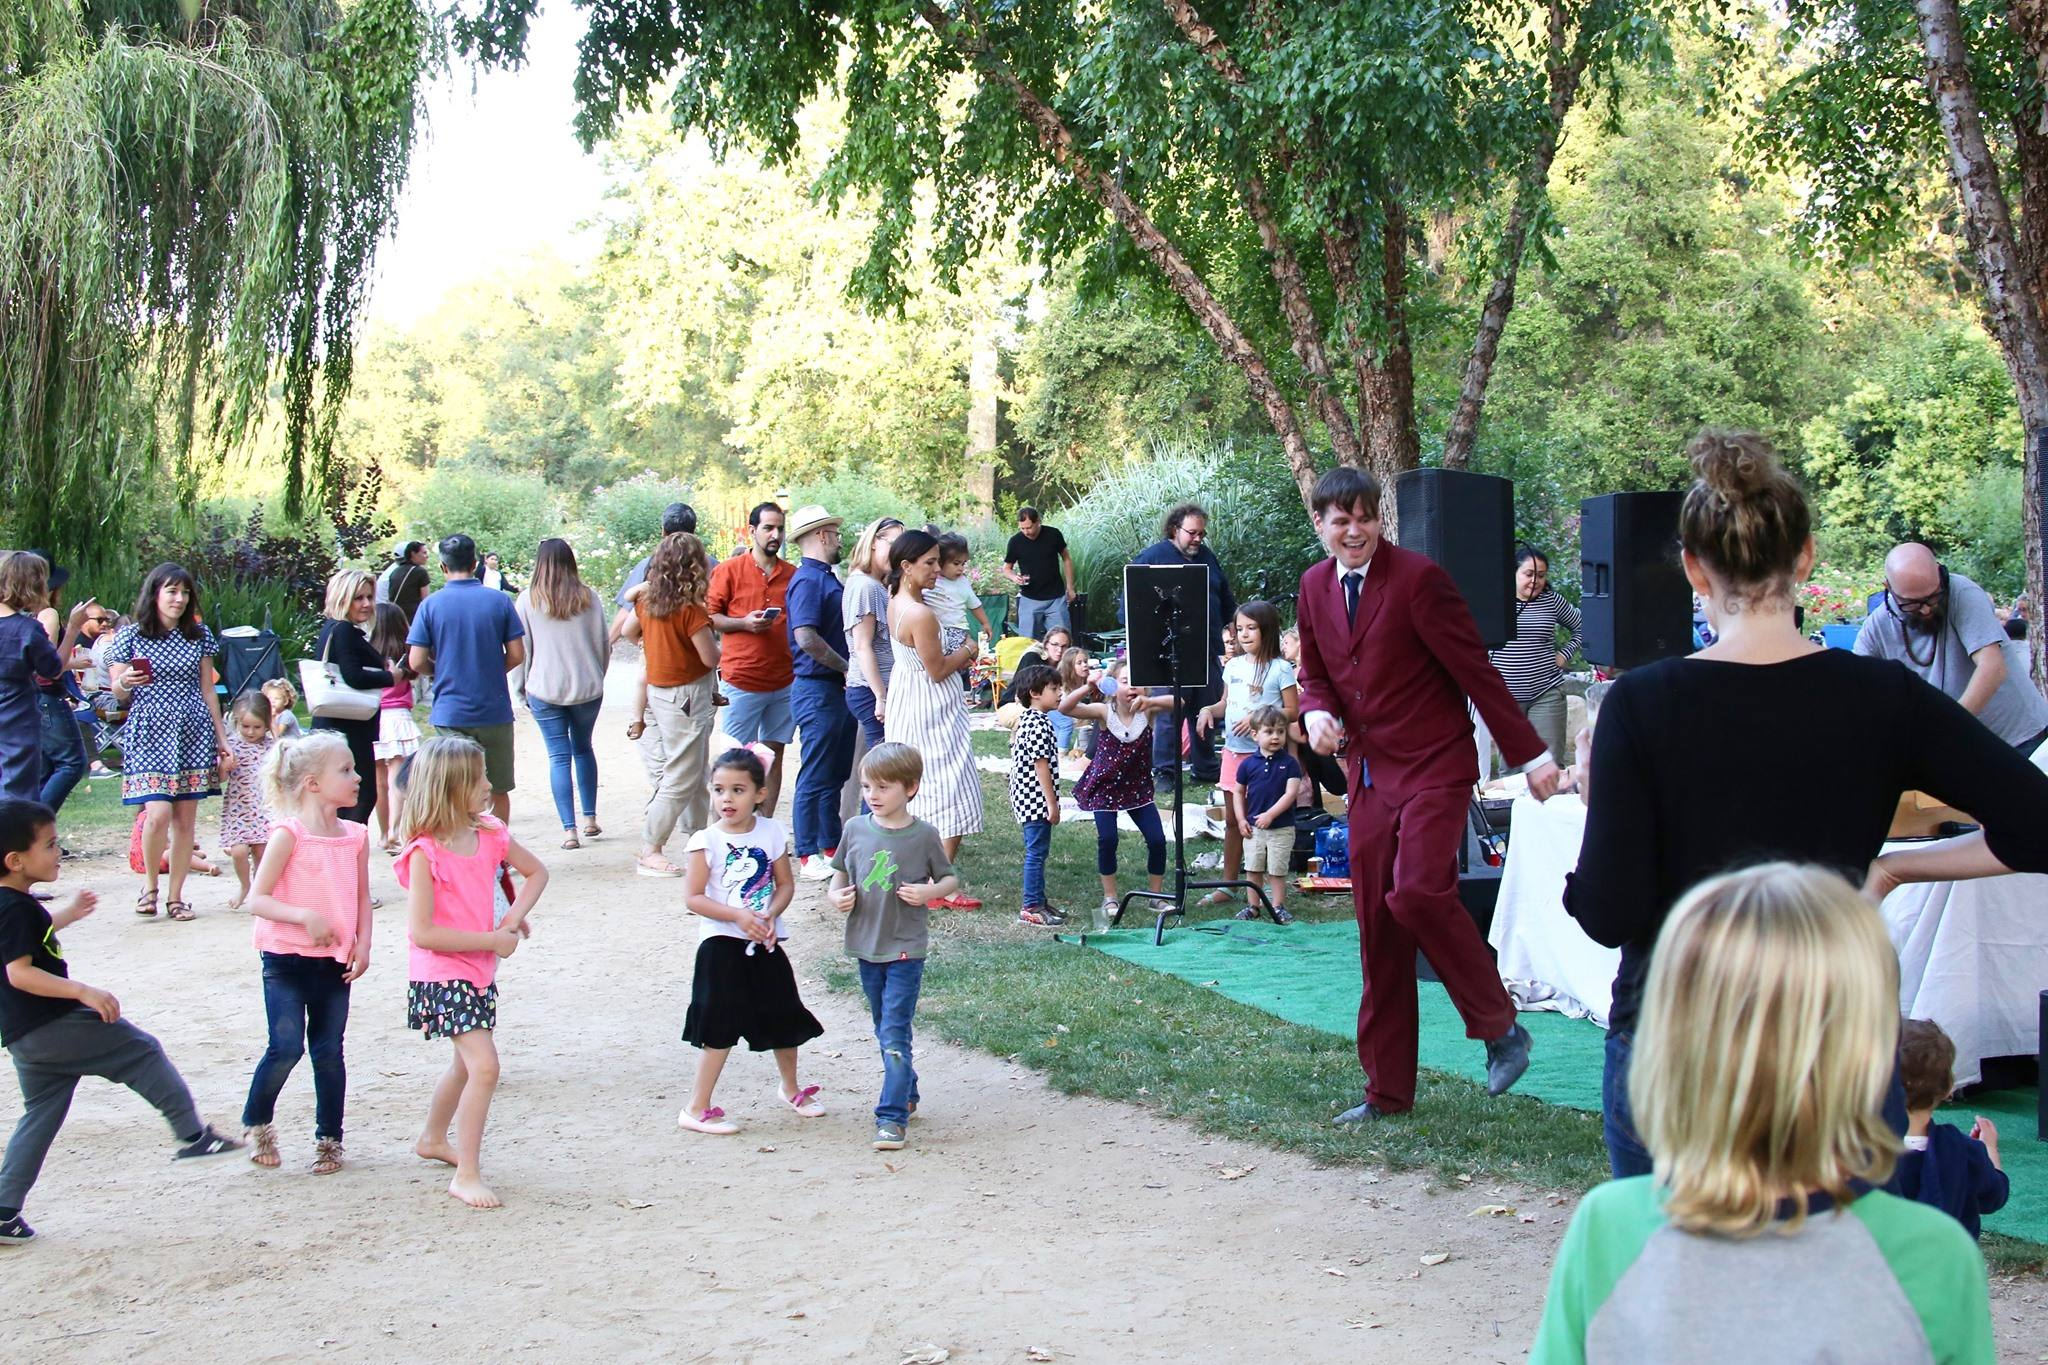 Summer Songs at Descanso Gardens